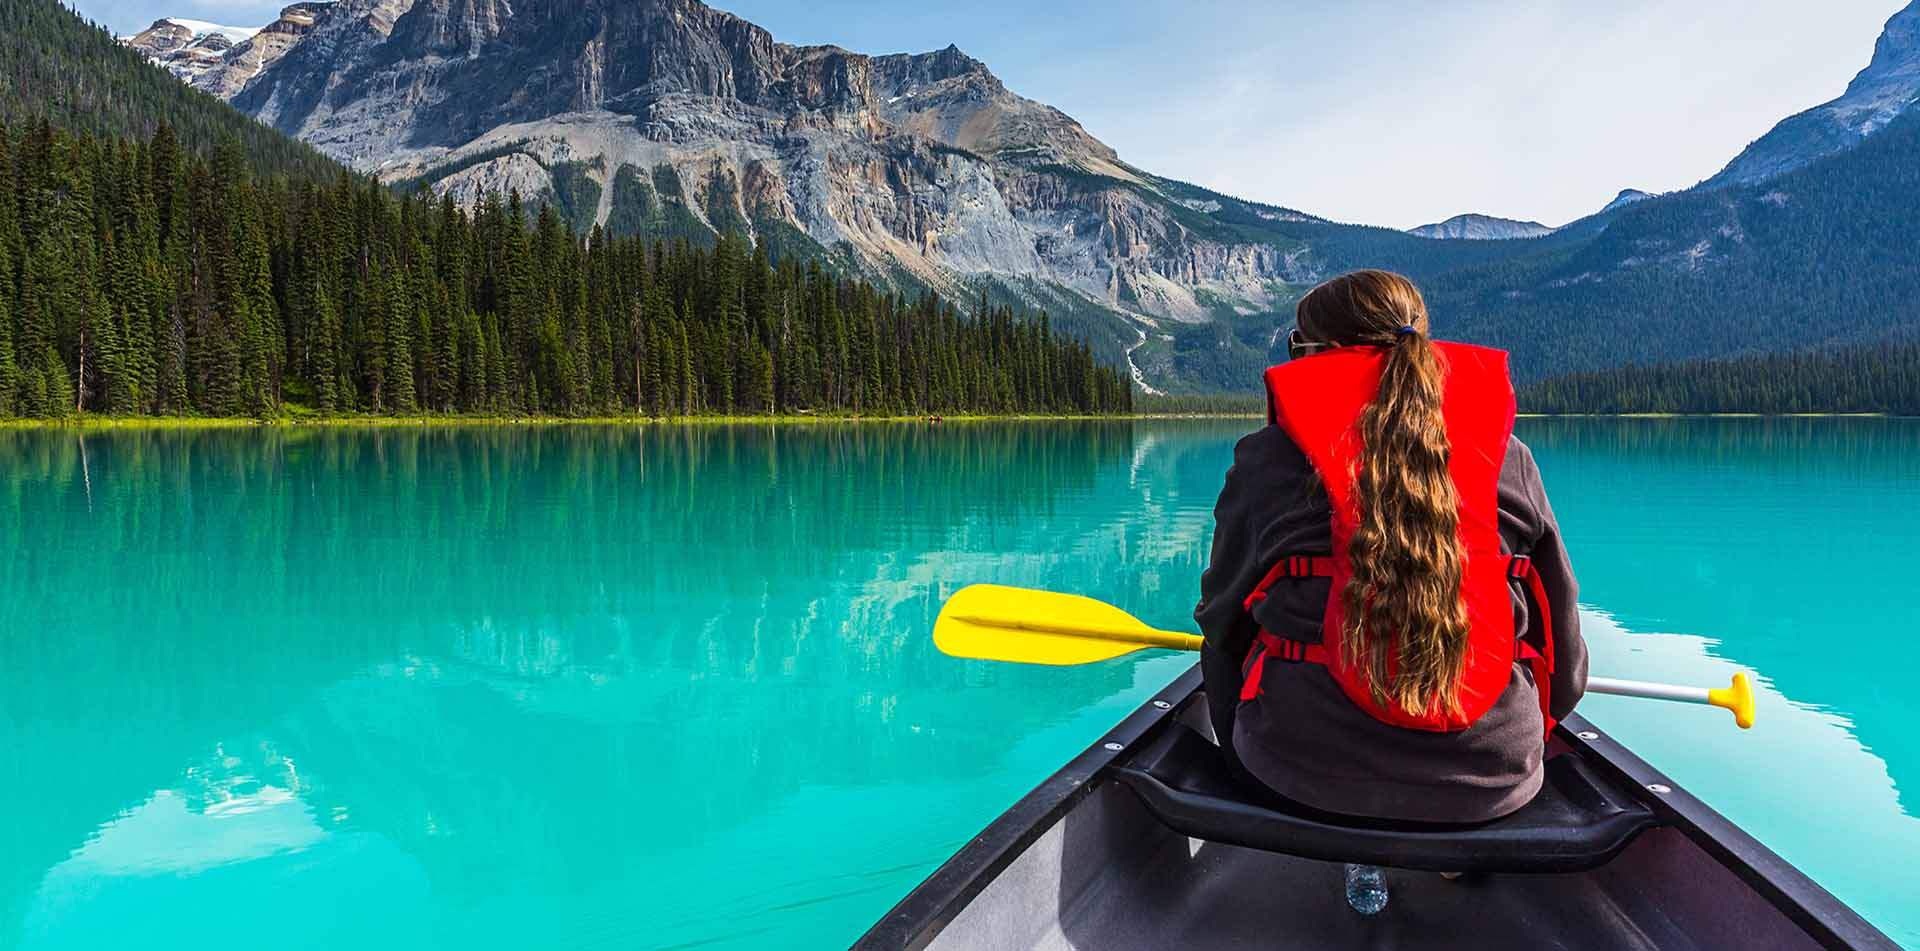 North America Canada British Columbia Yoho Rockies mountain Emerald Lake canoe blue water girl - luxury vacation destinations